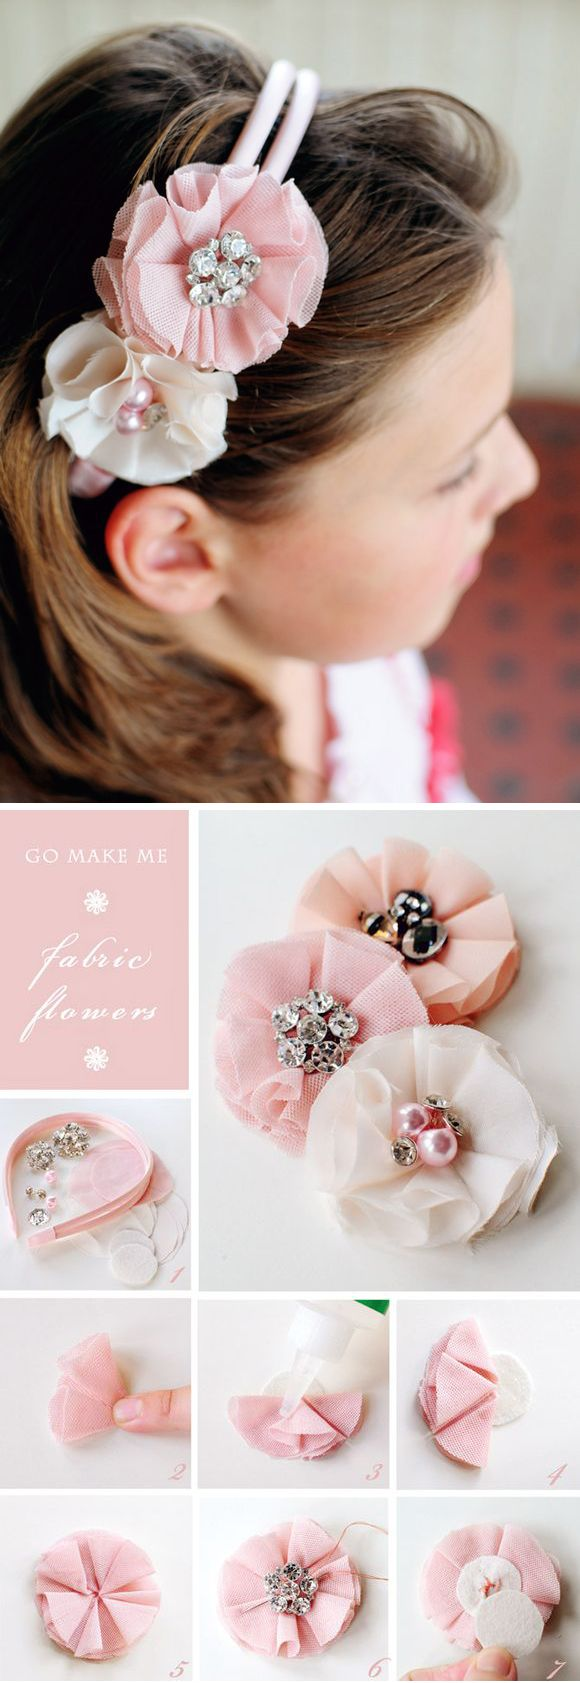 bejewelled flower headband